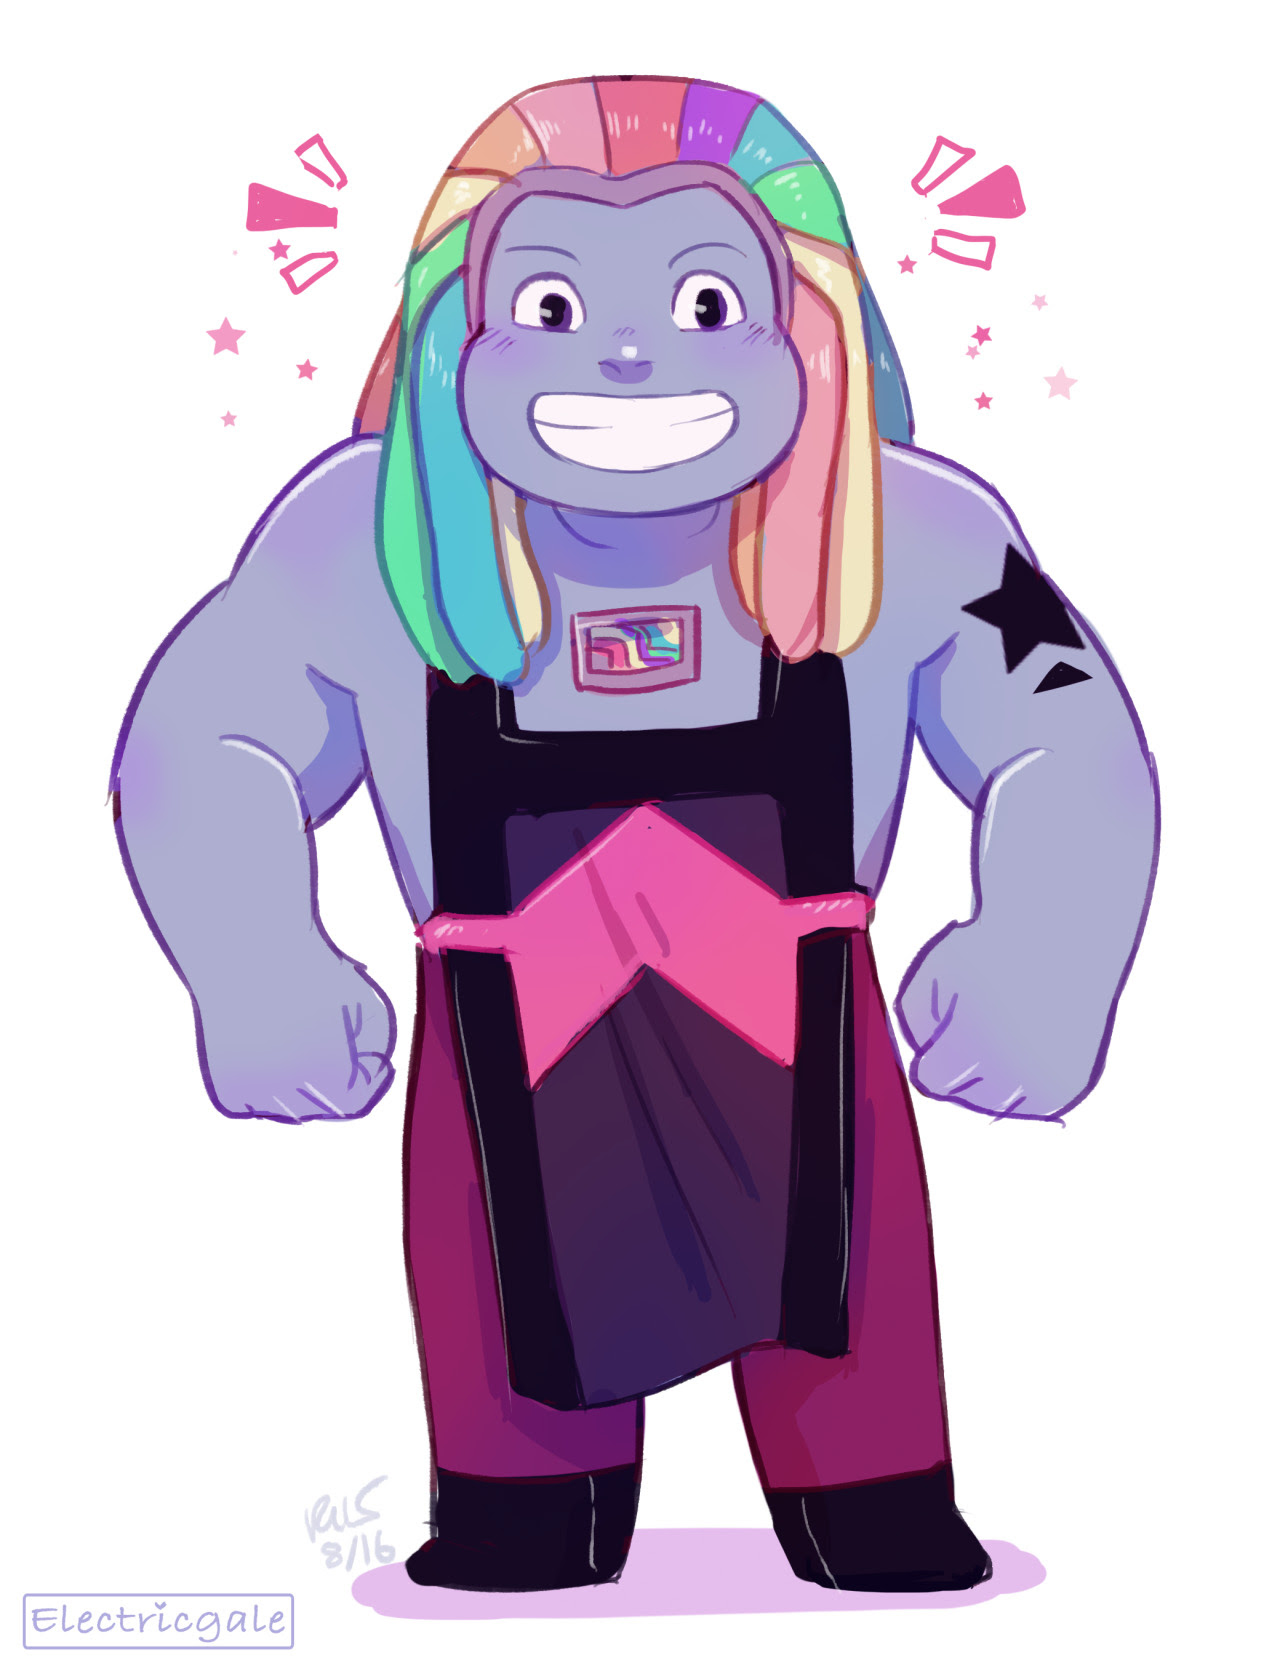 that episode was sad but bismuth's design is super cute!!